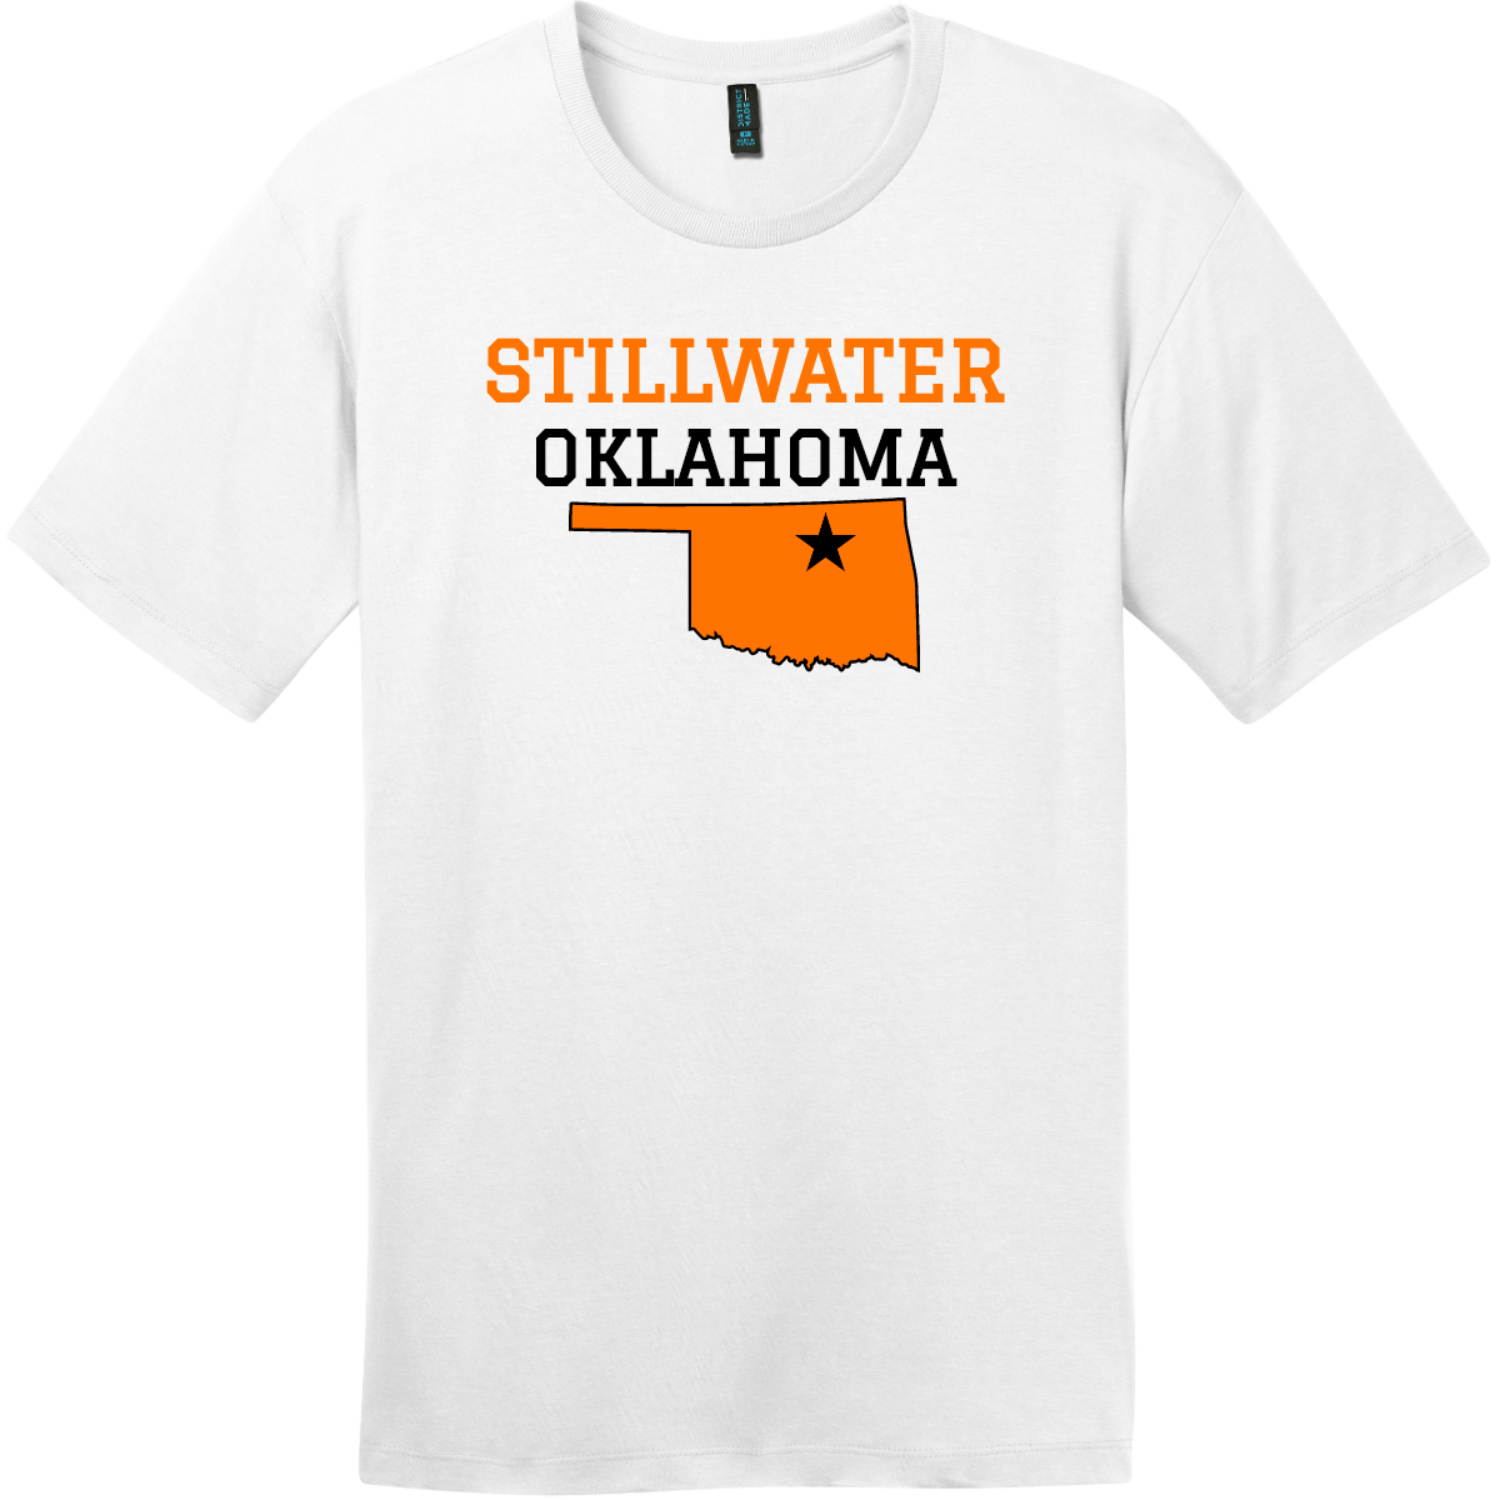 Stillwater Oklahoma T-Shirt Bright White District Perfect Weight Tee DT104